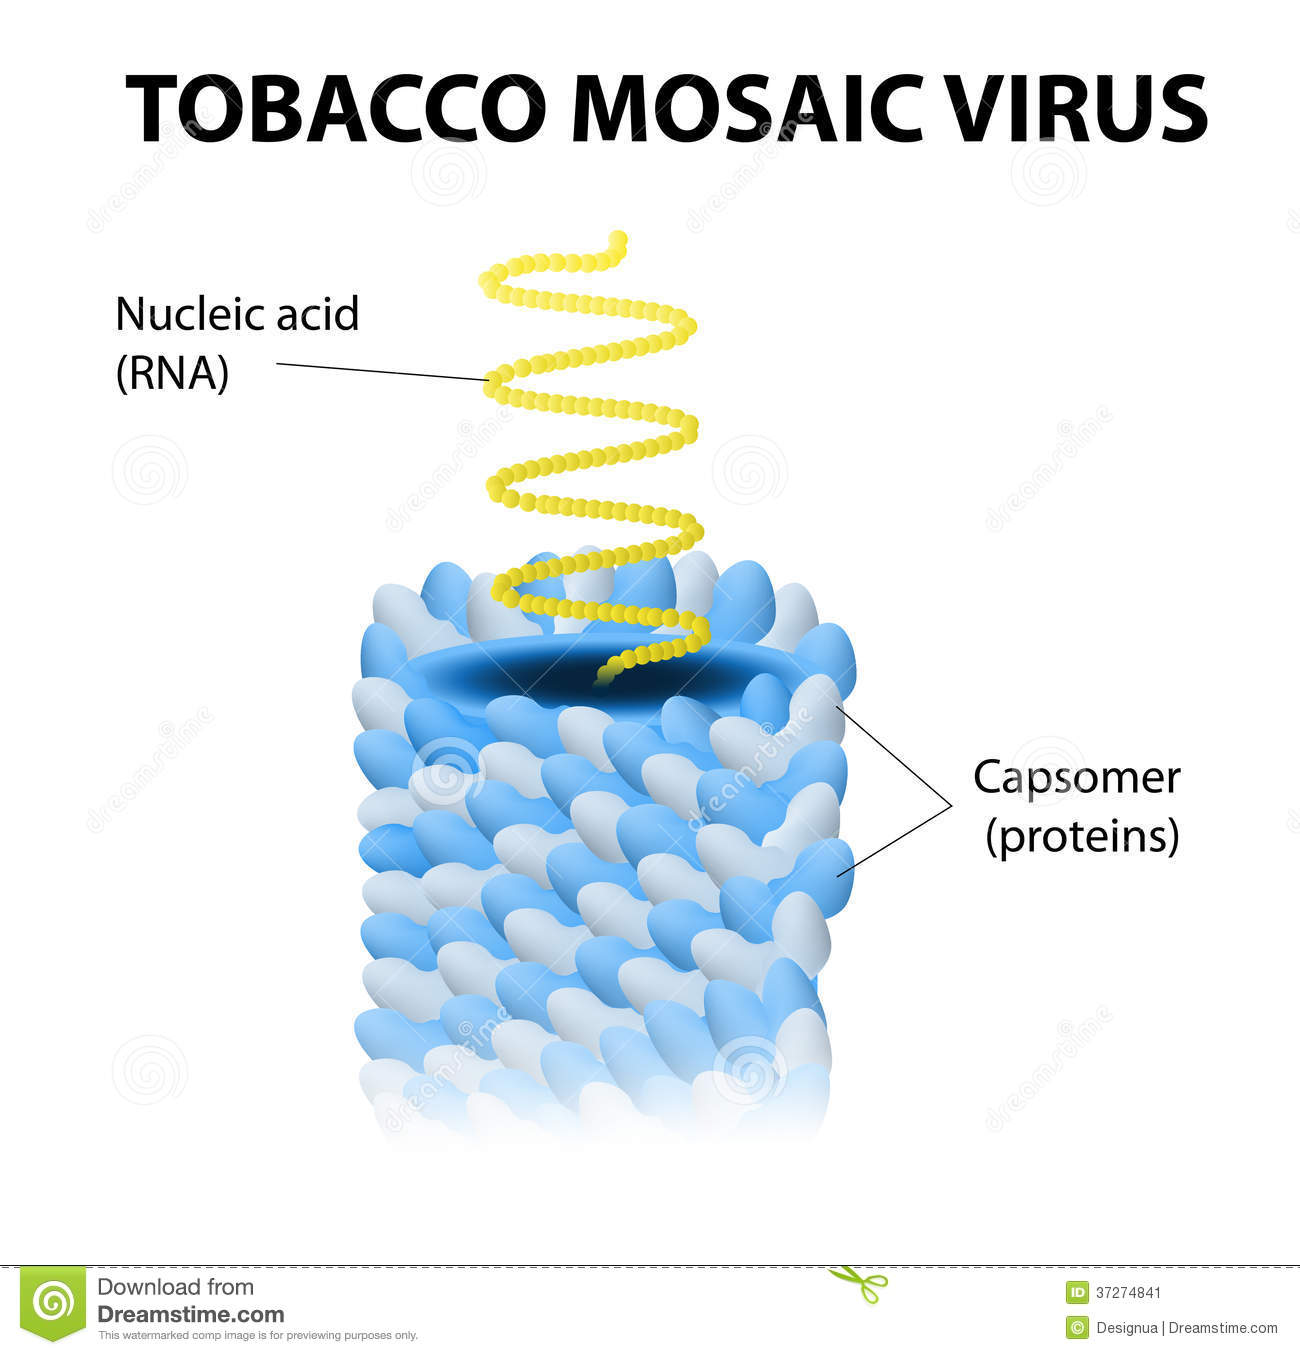 Aula as well Dna Replication Part I 23027303 also Stock Image Tobacco Mosaic Virus Schematic Model Tmv First To Ever Be Discovered Key To Gene Therapy Image37274841 moreover Smallpox together with What Is Heteroduplex. on dna diagram labeled